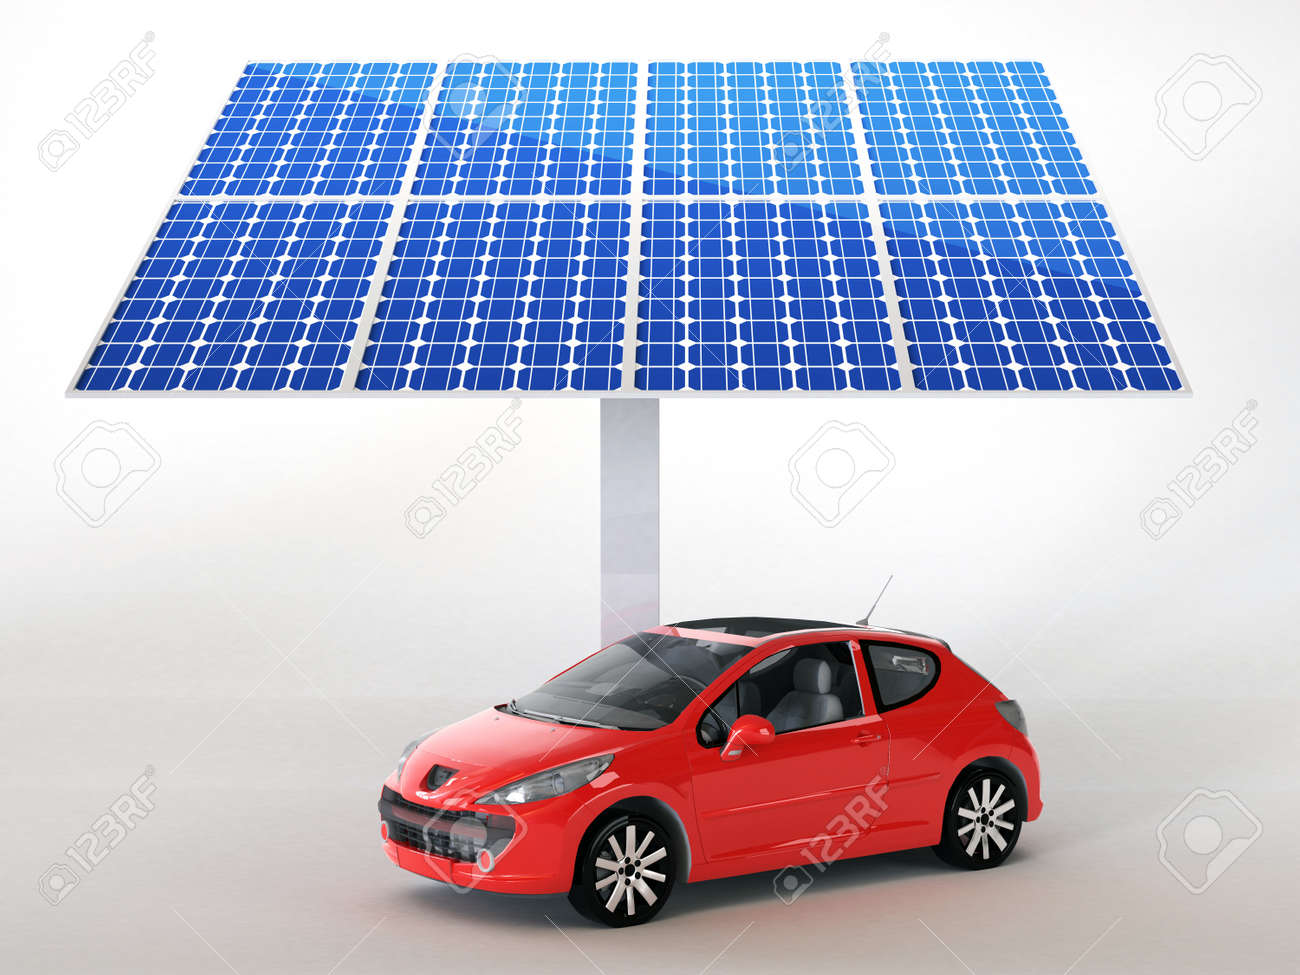 solar panel for cars Stock Photo - 16774104